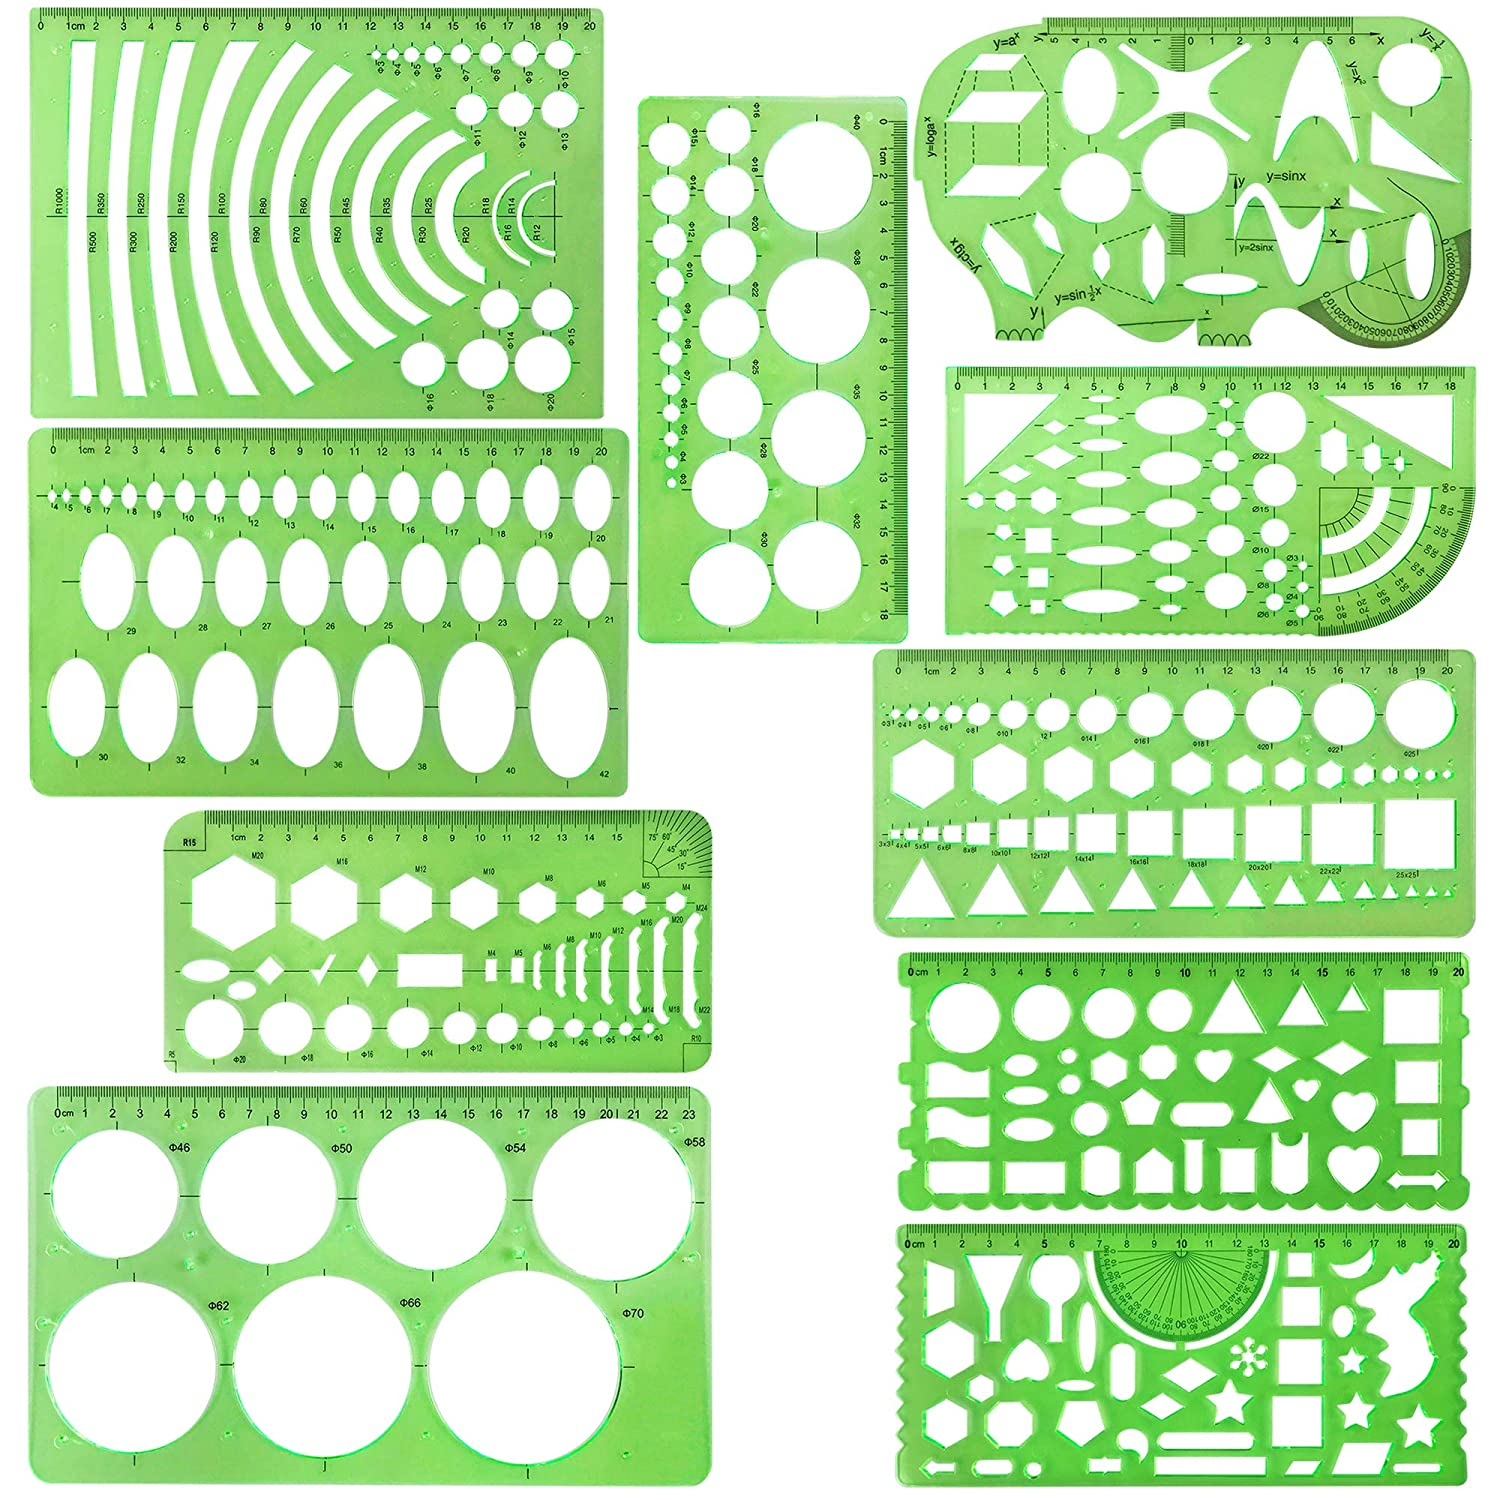 10 Pieces Green Plastic Drawings Templates Measuring Templates Geometric Rulers for School and Office Supplies Lemimo